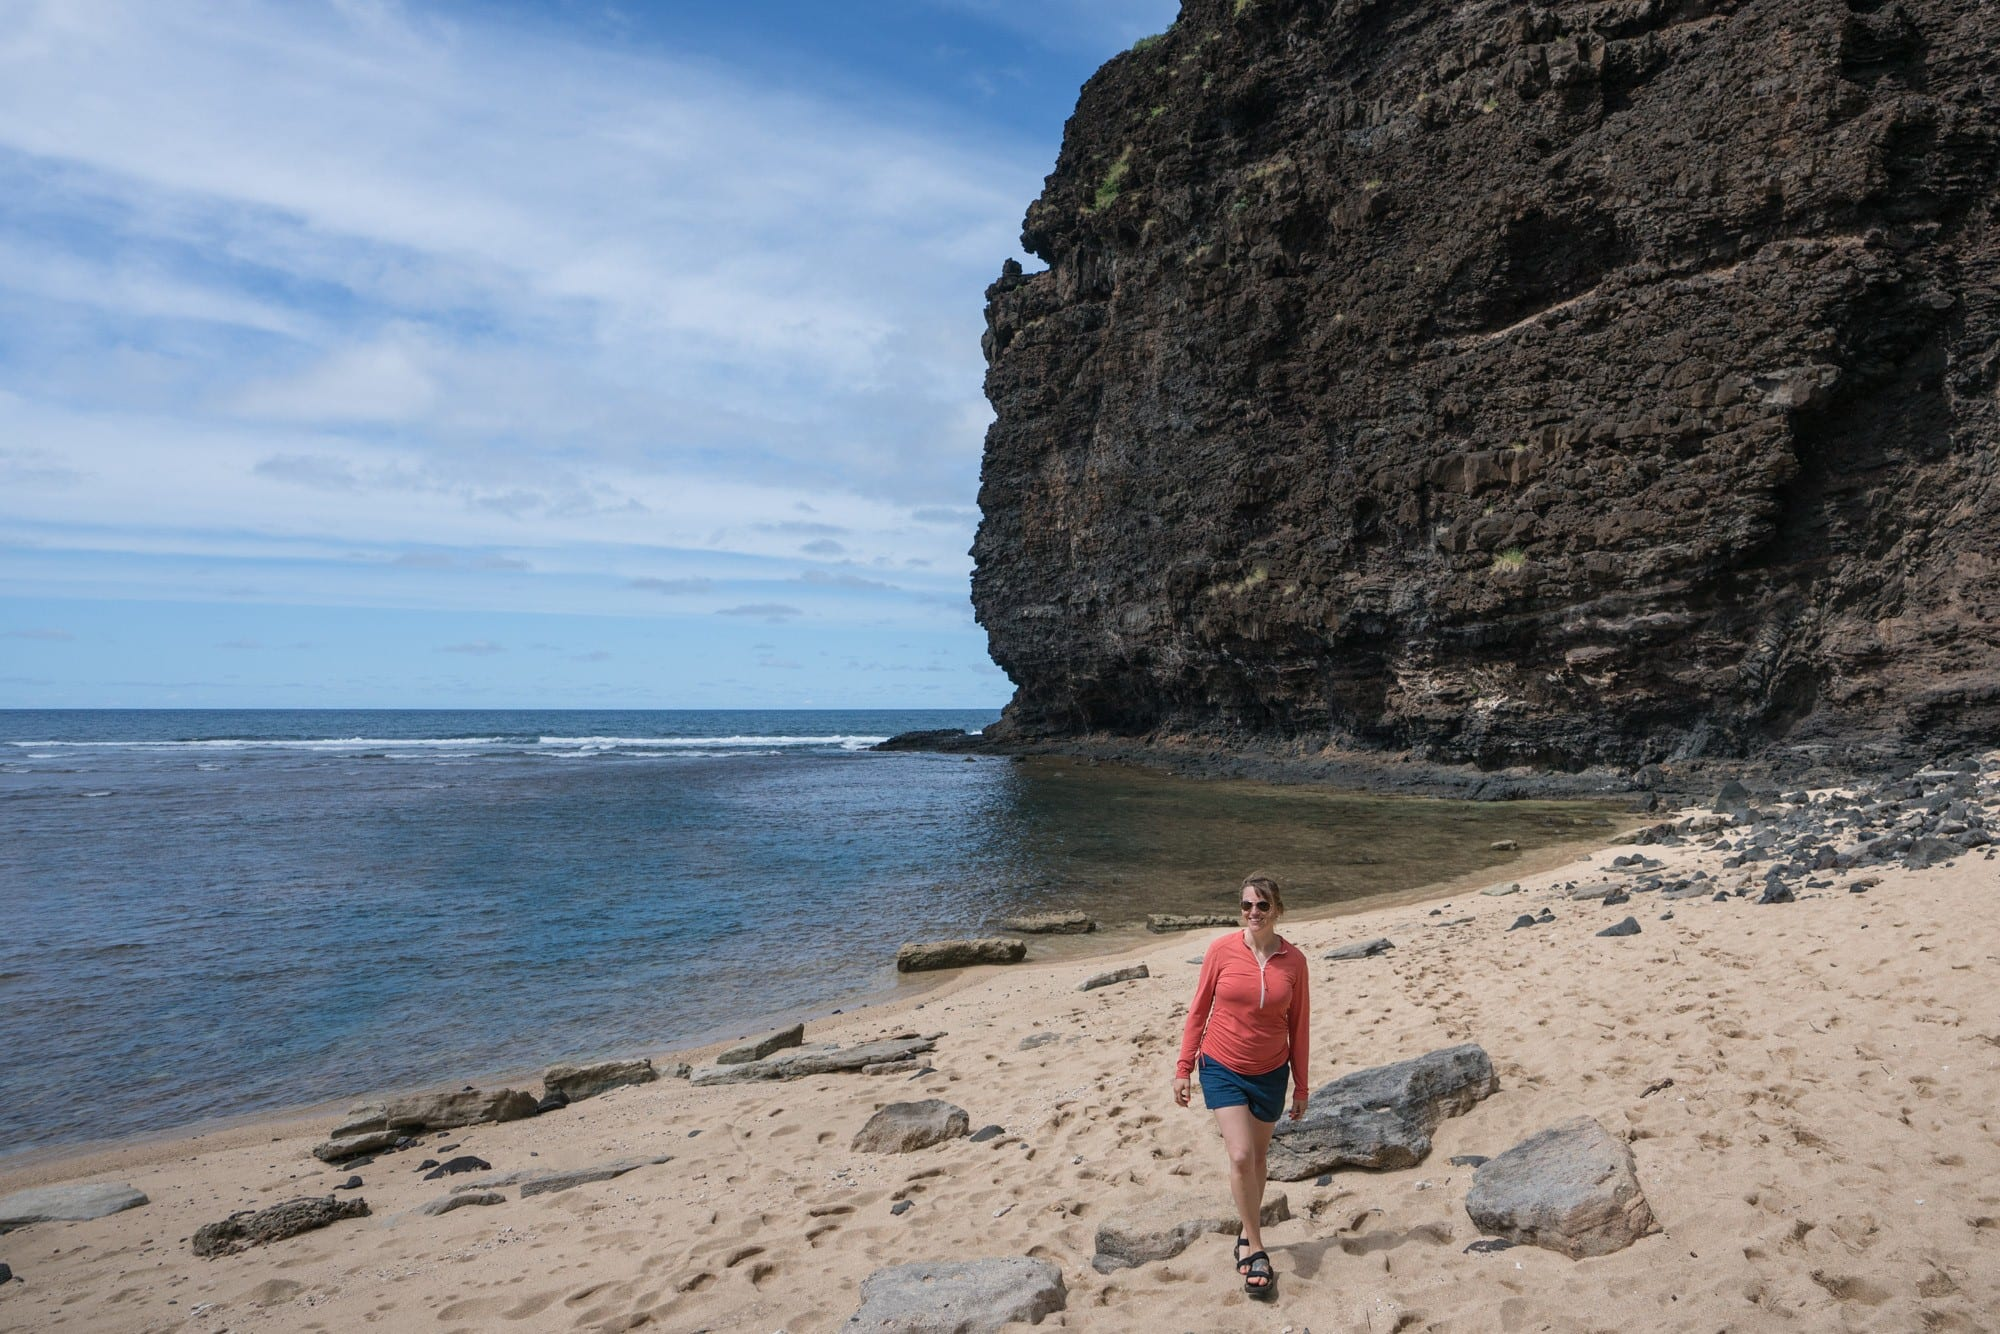 Planning a hiking or camping trip to Hawaii? Get my Hawaii packing list for an outdoor adventure trip to any of the islands. From sun protection and the best hiking shoes for Hawaii's wet and muddy trail to car camping essentials, this gear checklist will help you prepare.